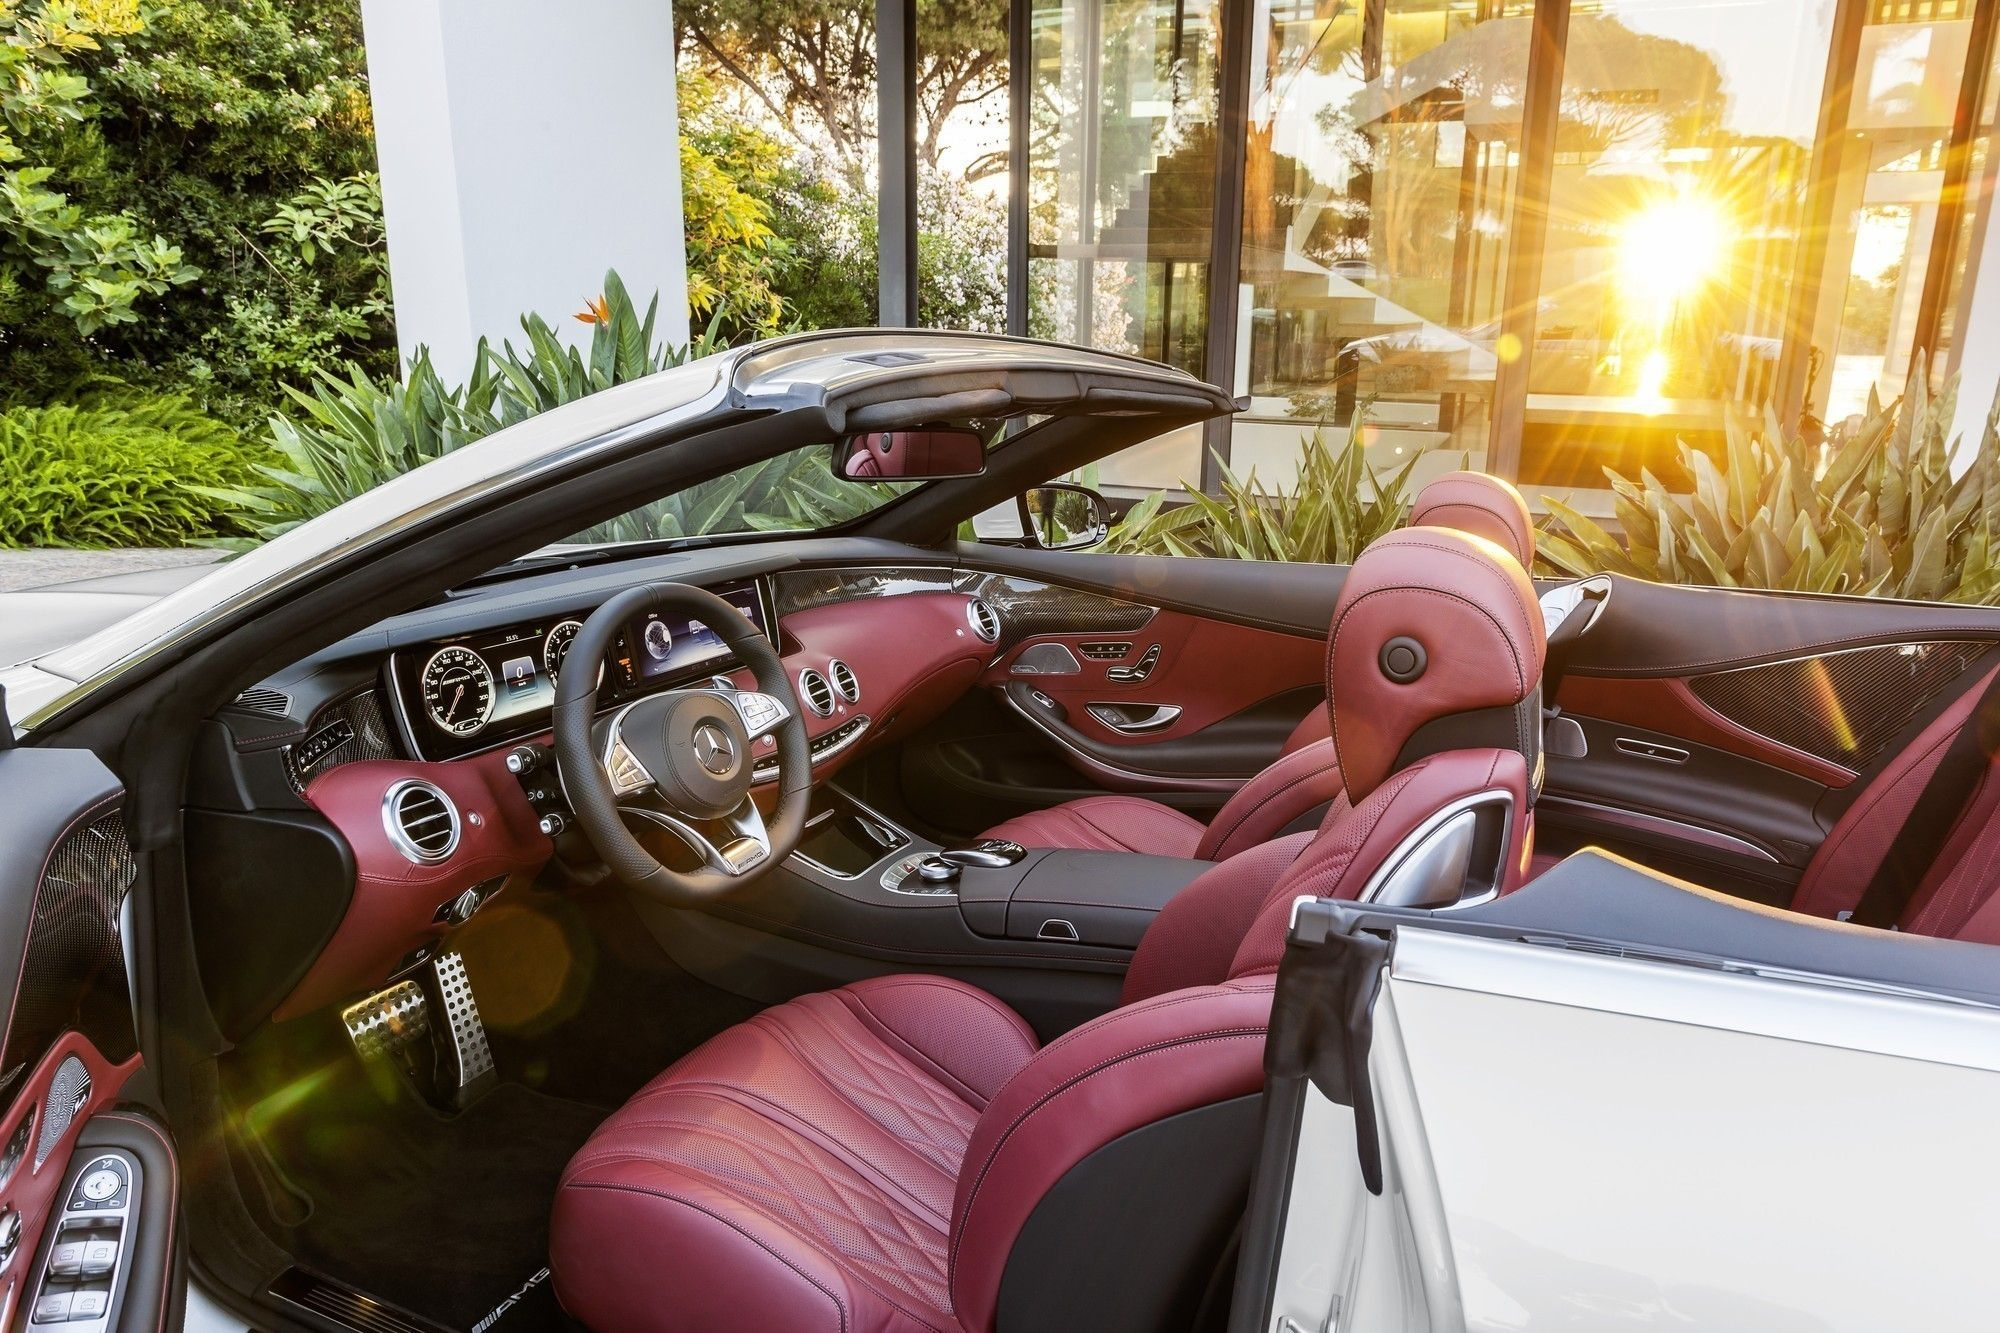 The Amazing Interior Of New Mercedes Amg S 63 Cabriolet Benz Lays Claim To Building World Most Comfortable Convertible